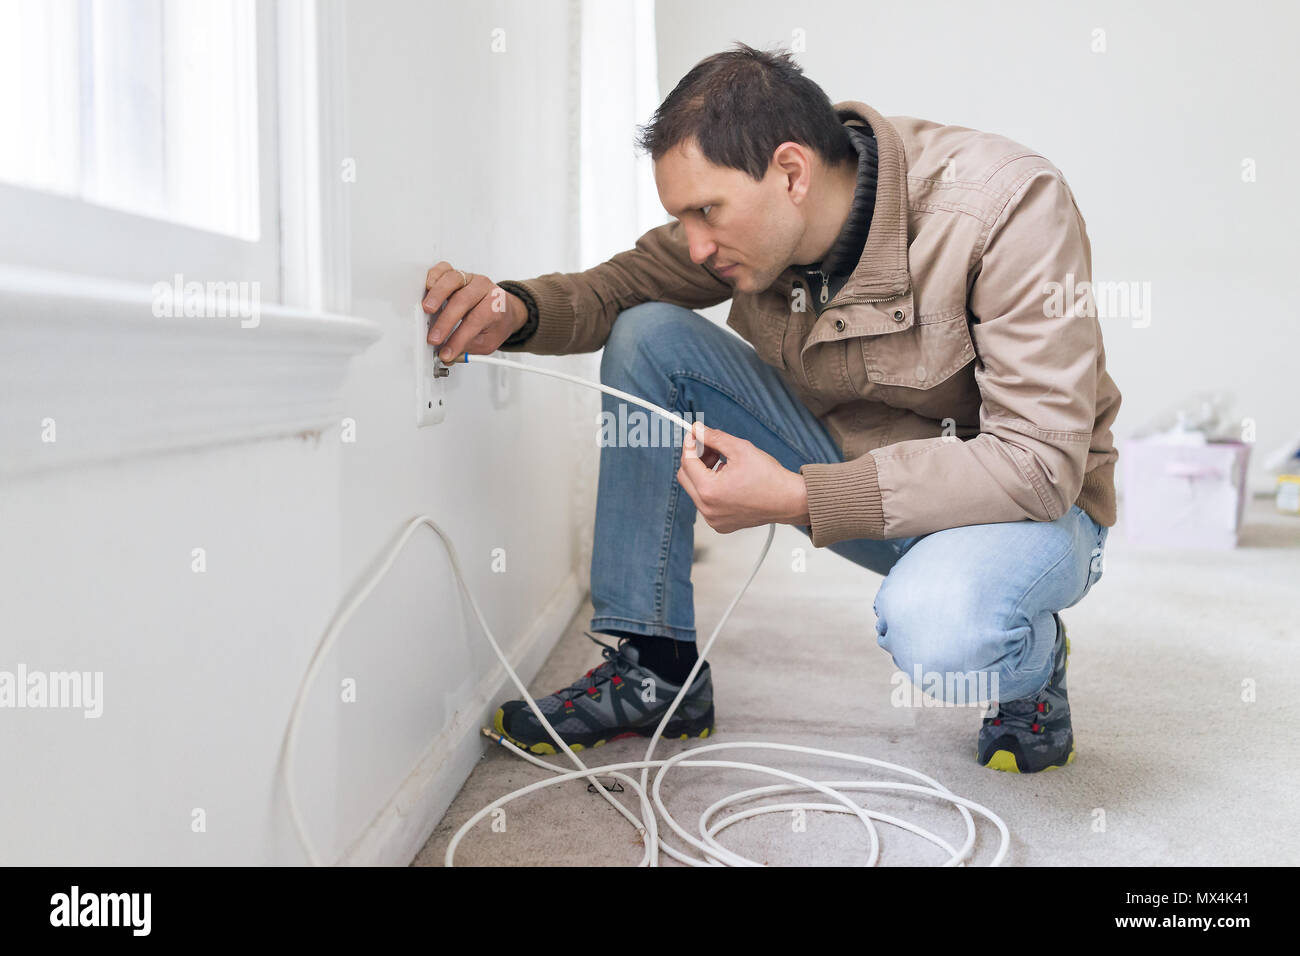 Young Man Installing Cable Television Internet Wire In Room Wall Tv Wiring Carpet Floor Flooring White Walls During Remodeling Inspection Renovation